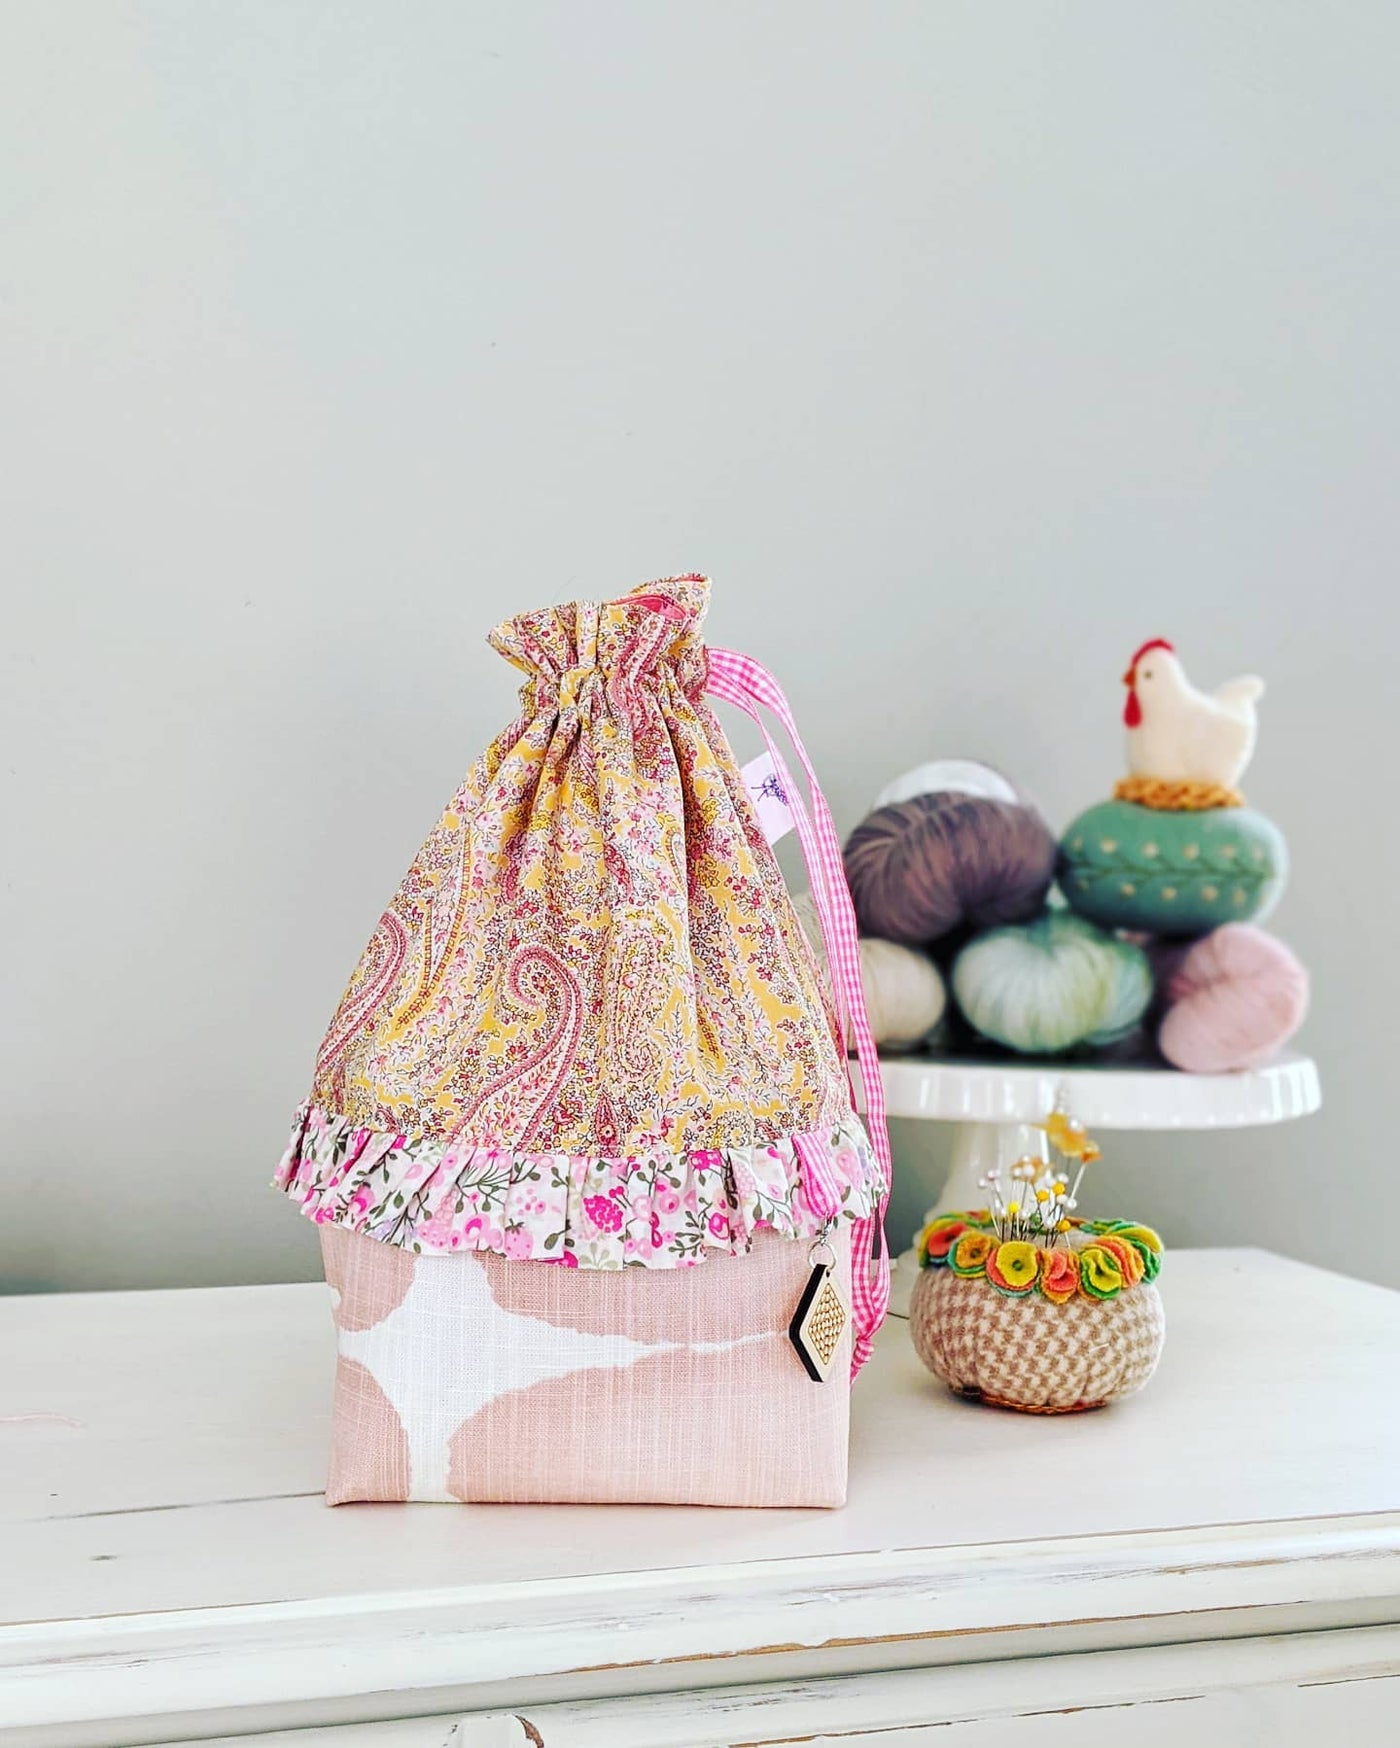 Ditty Bag in a Tutu Pink Paisley